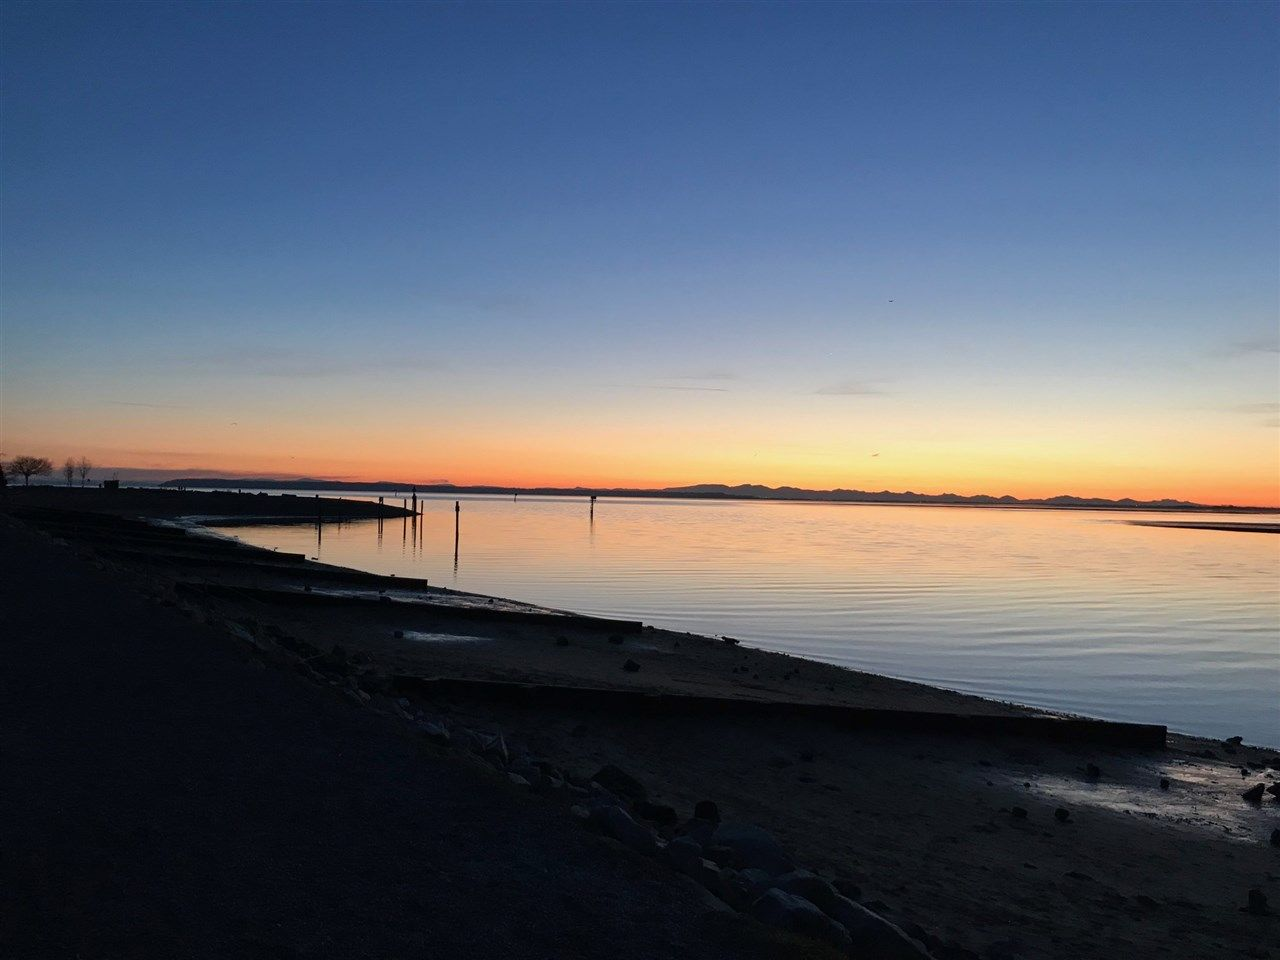 """Main Photo: 3038 O'HARA Lane in Surrey: Crescent Bch Ocean Pk. House for sale in """"Crescent Beach Waterfront"""" (South Surrey White Rock)  : MLS®# R2337537"""